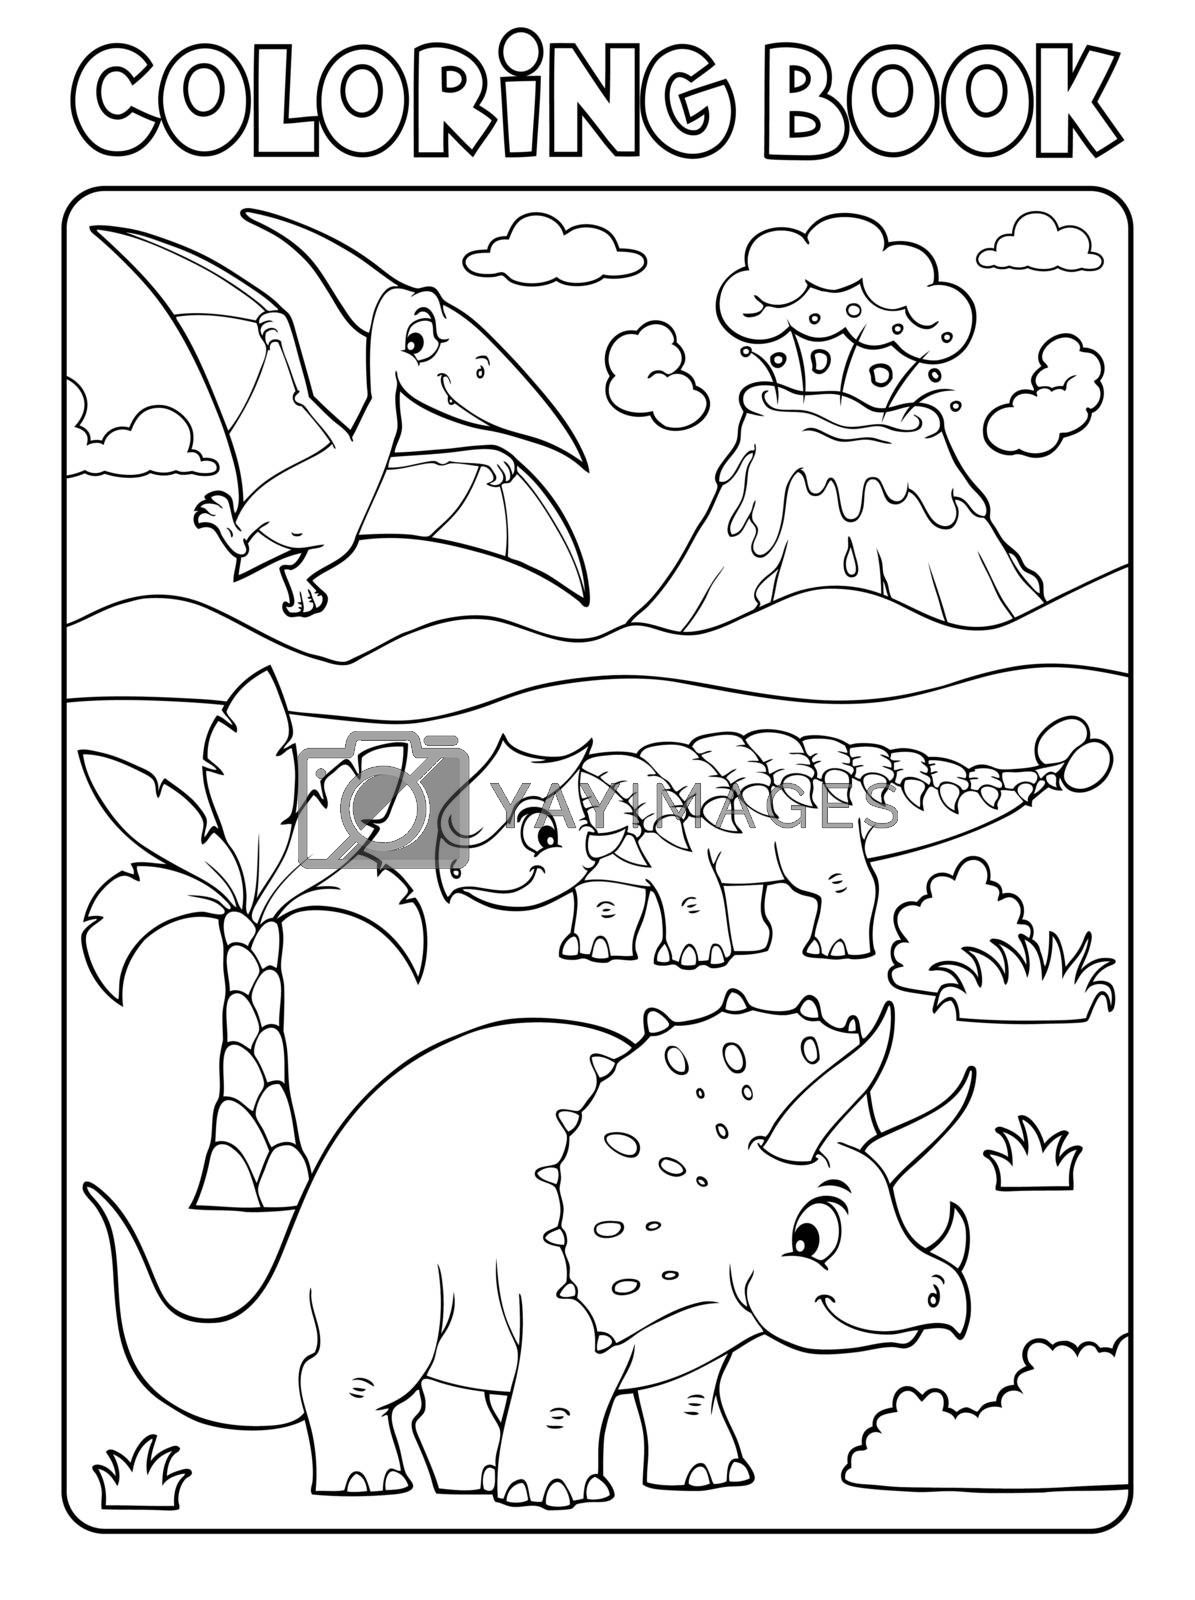 Coloring book dinosaur subject image 6 - eps10 vector illustration.